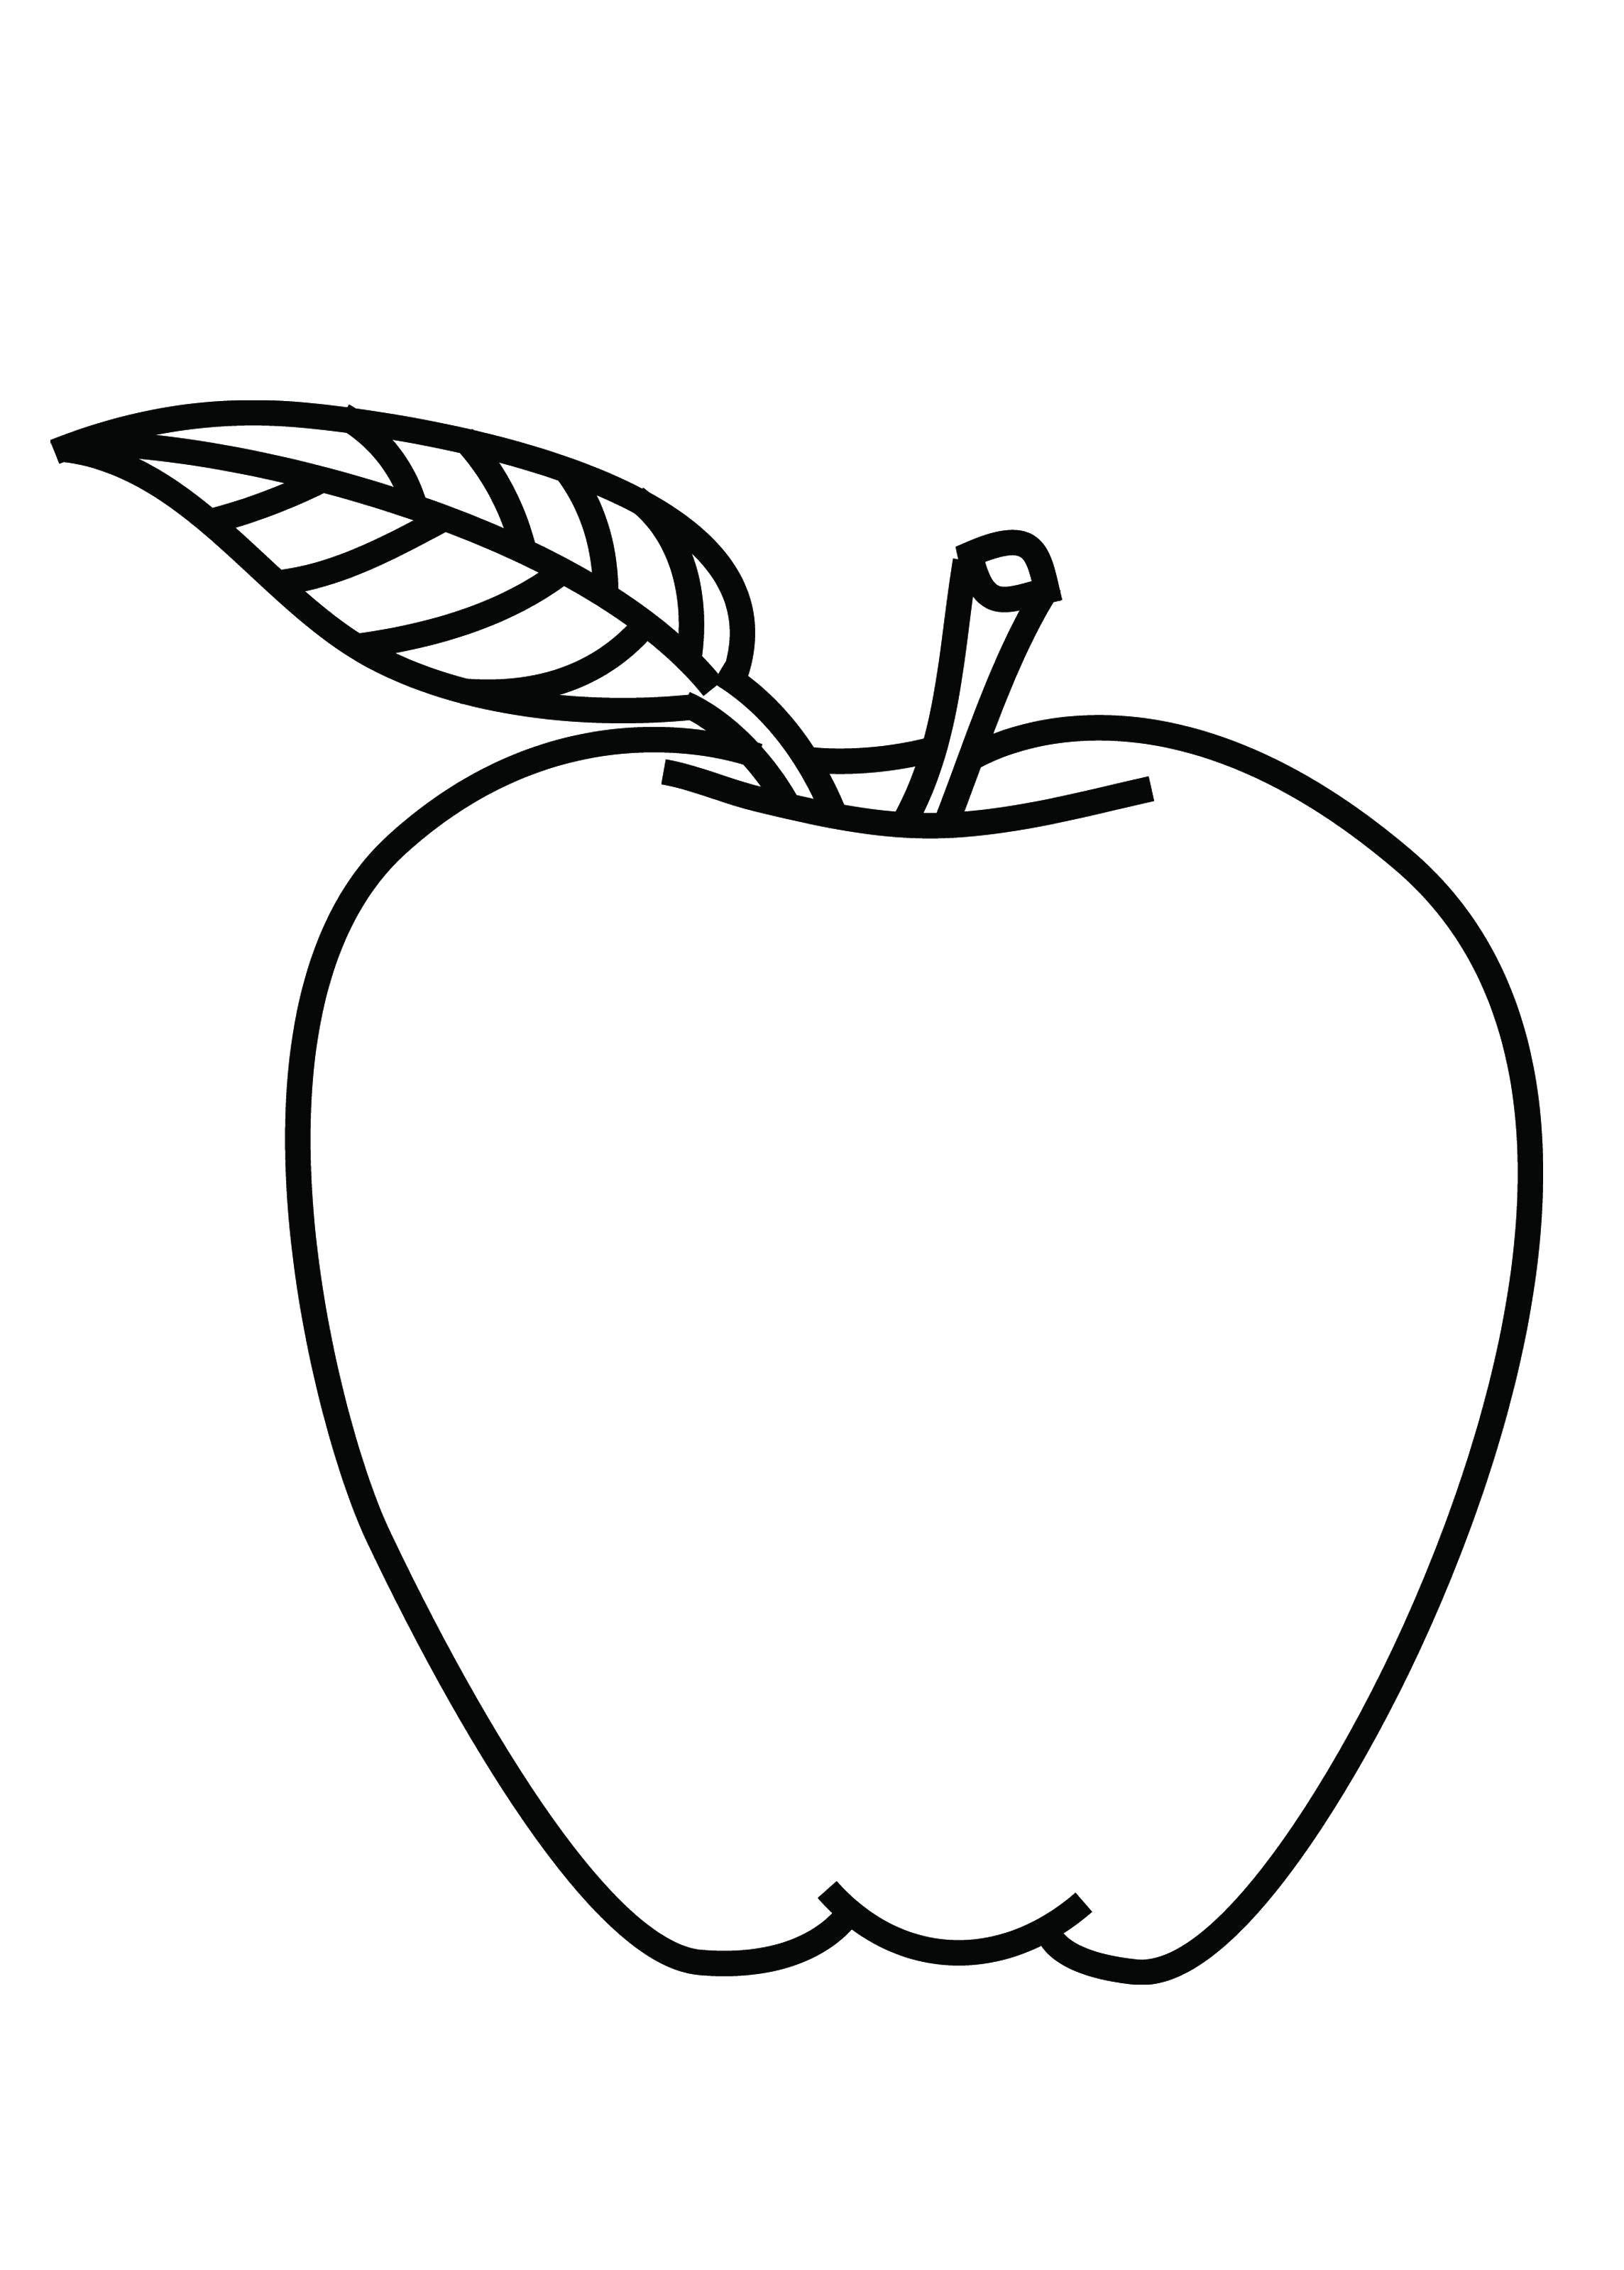 coloring image fruits fruits drawing for colouring at getdrawings free download image coloring fruits